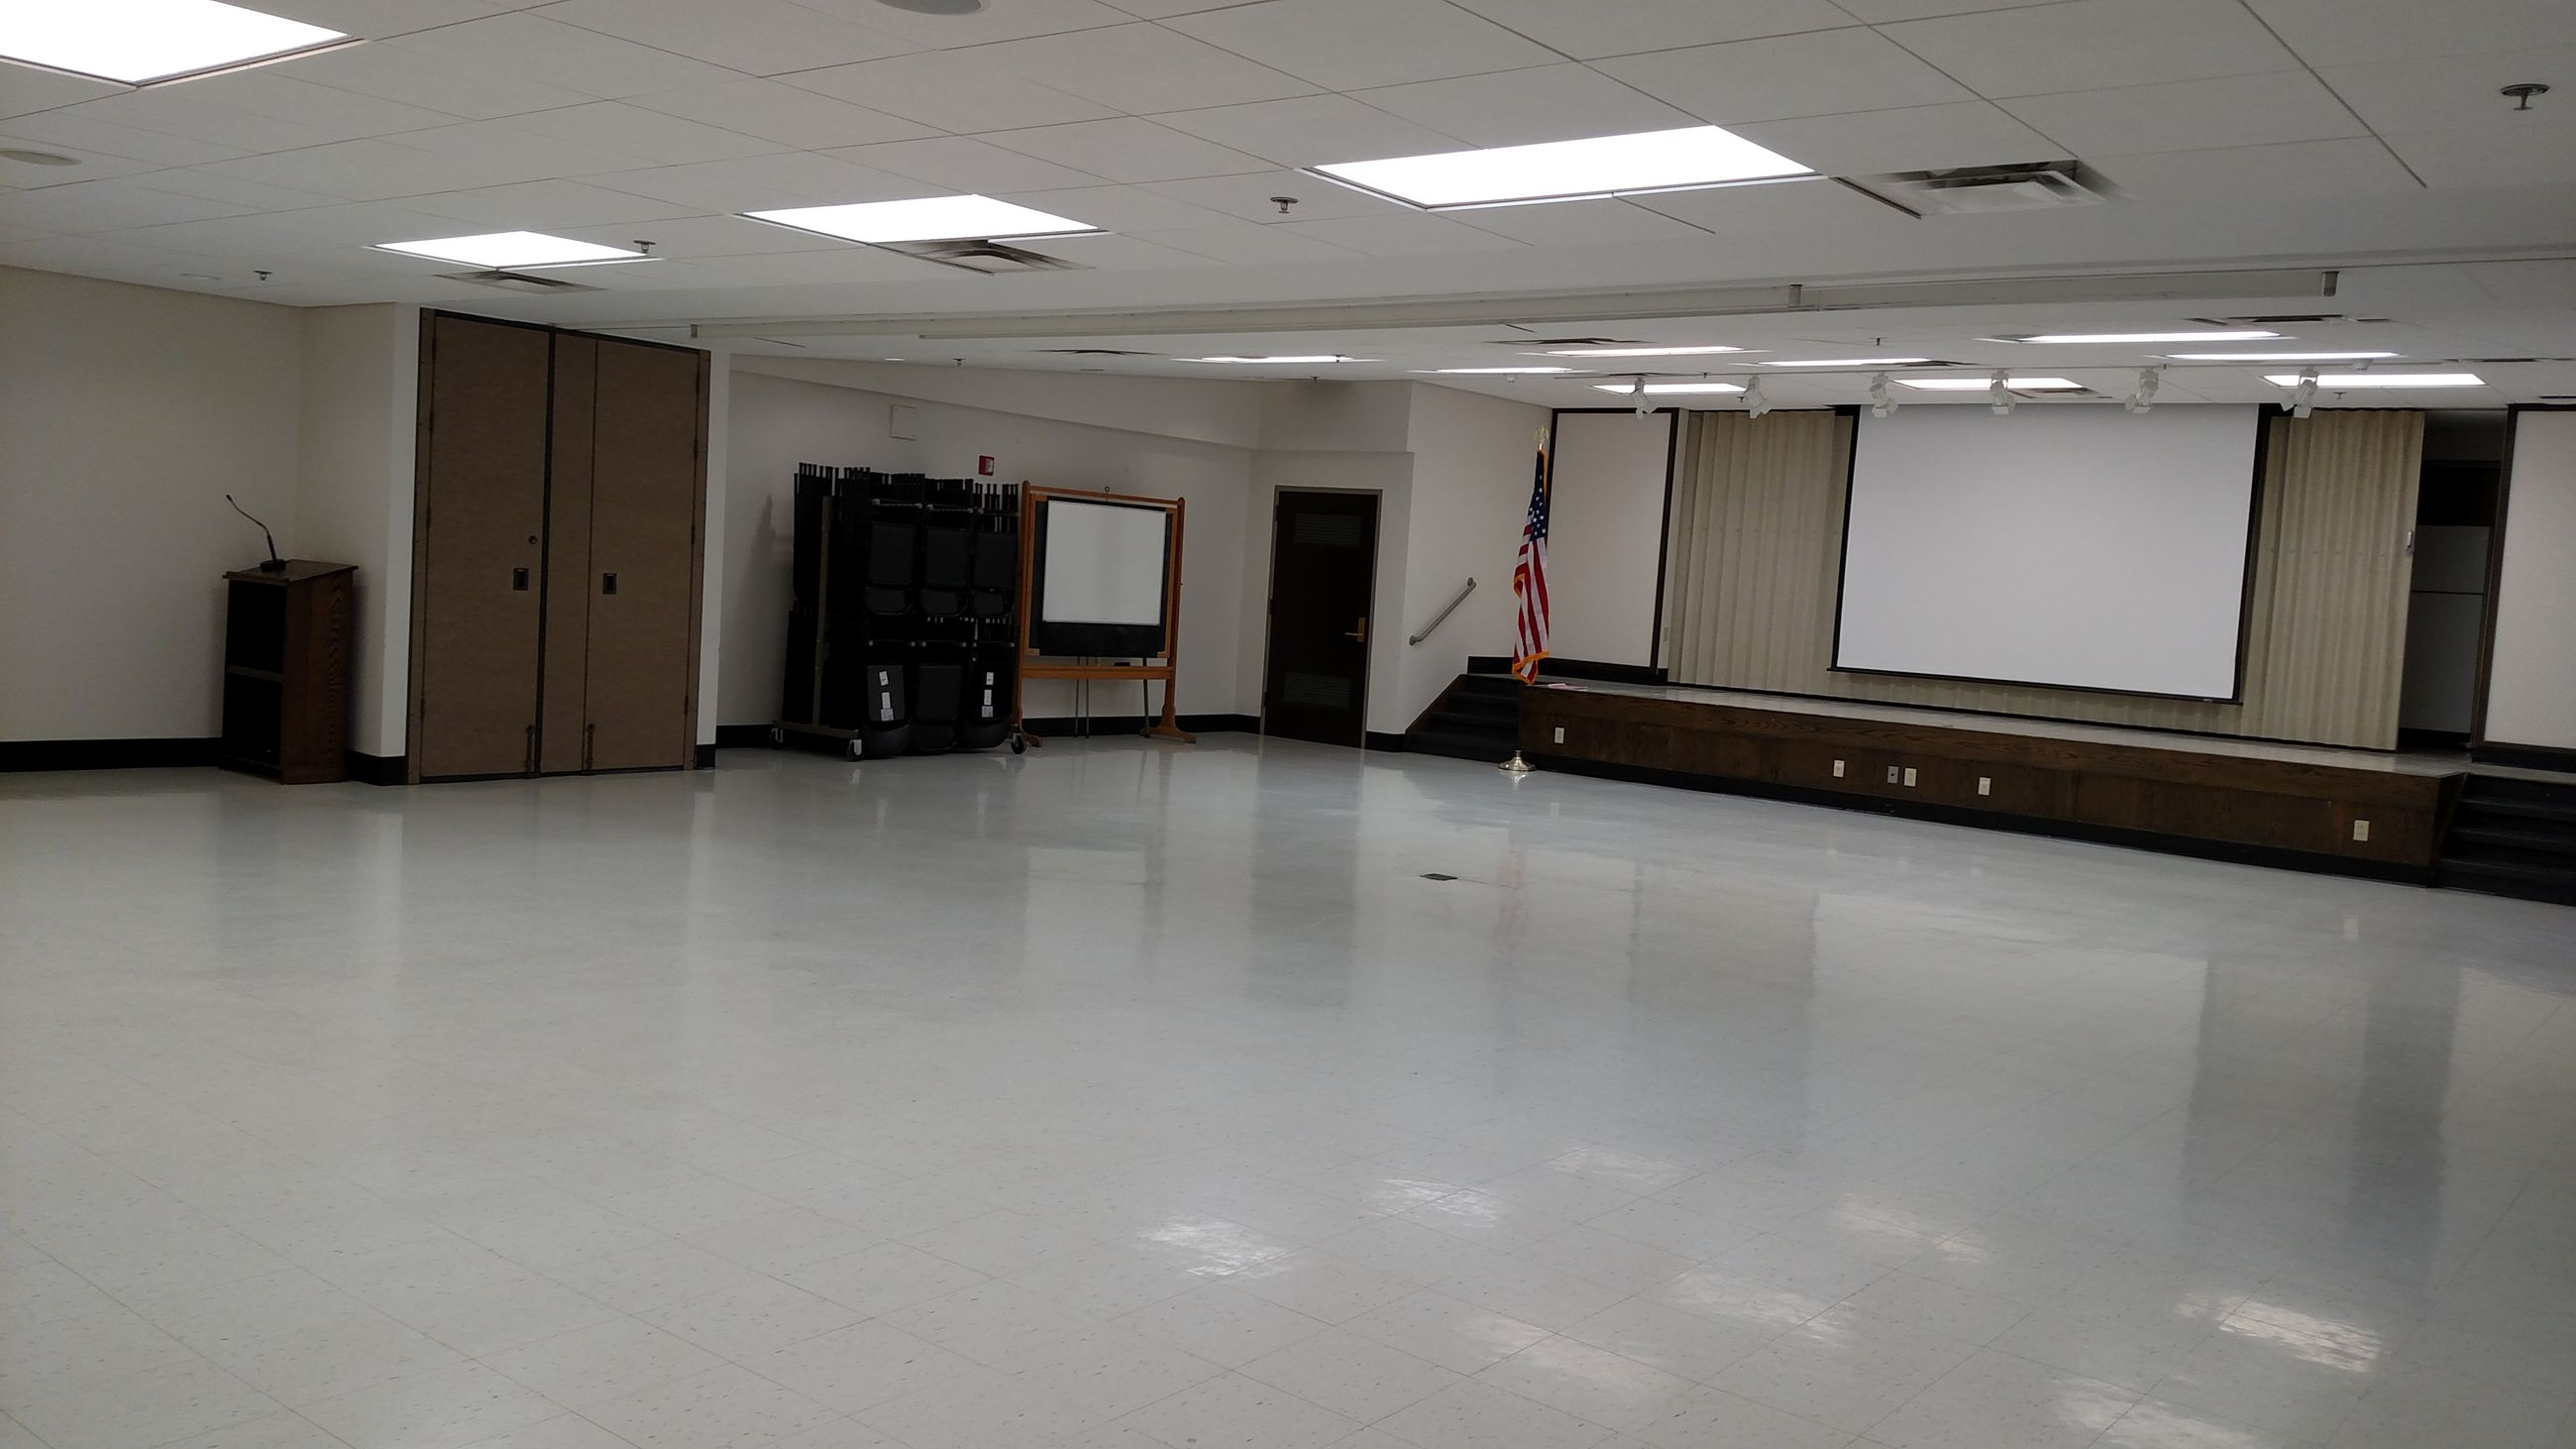 A picture of Yates County's auditorium, located in the basement level of the Office Building